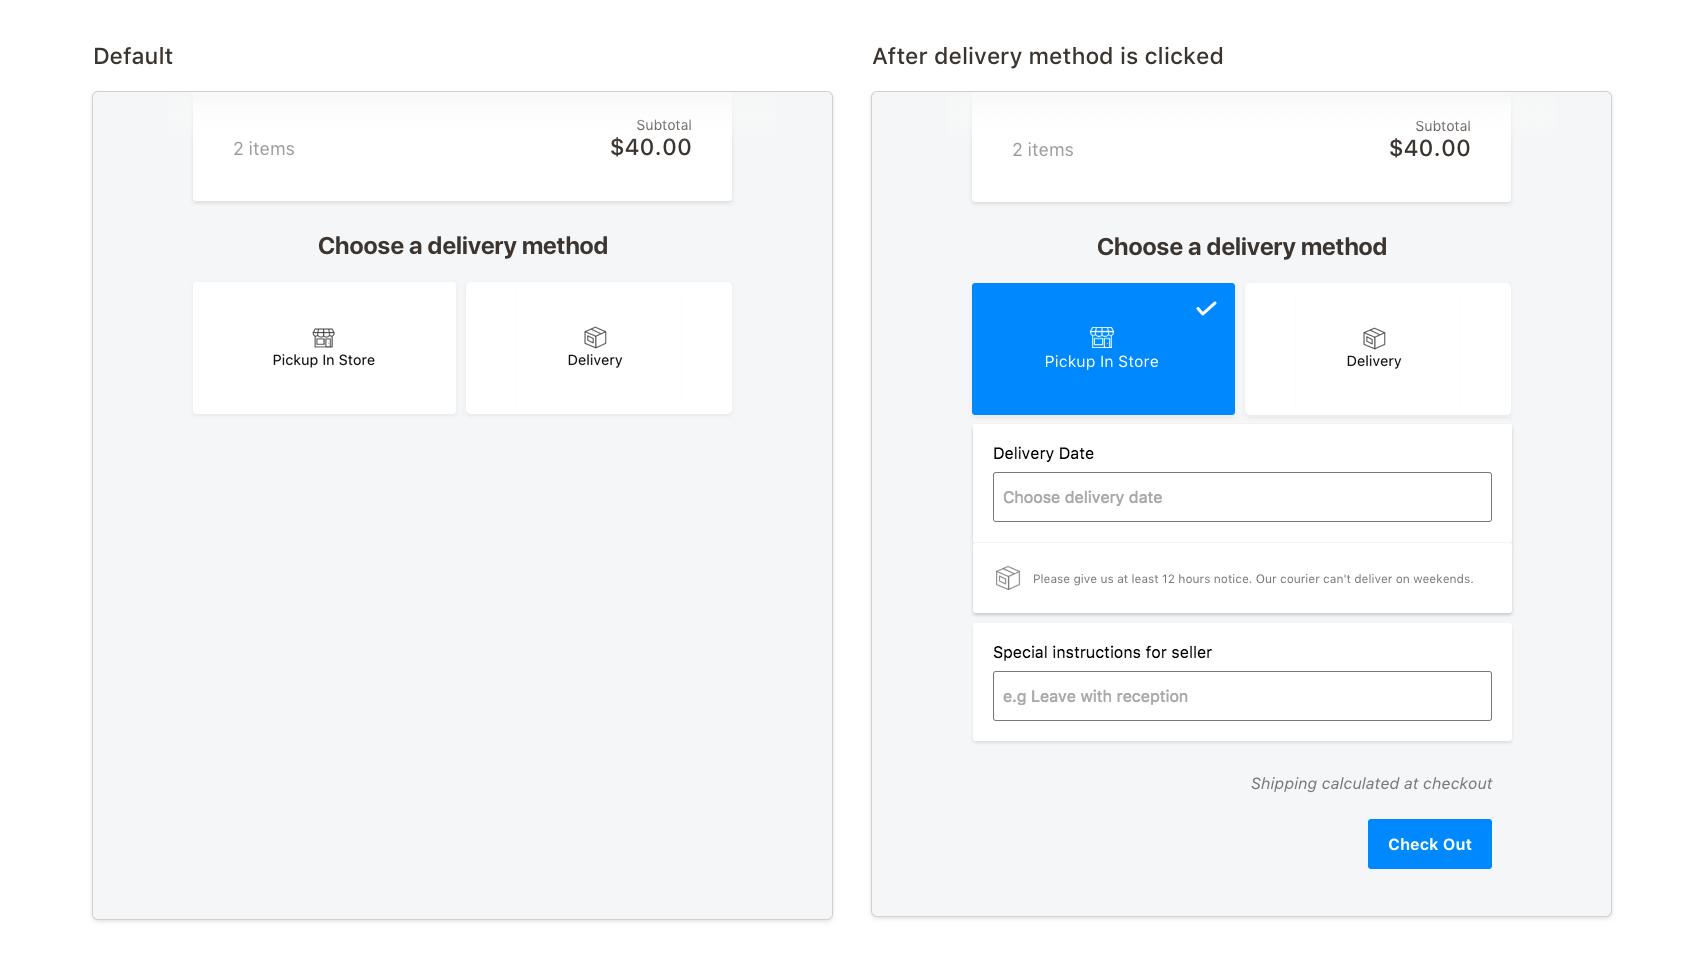 Intentionally forcing users to choose a delivery method before clicking Check Out